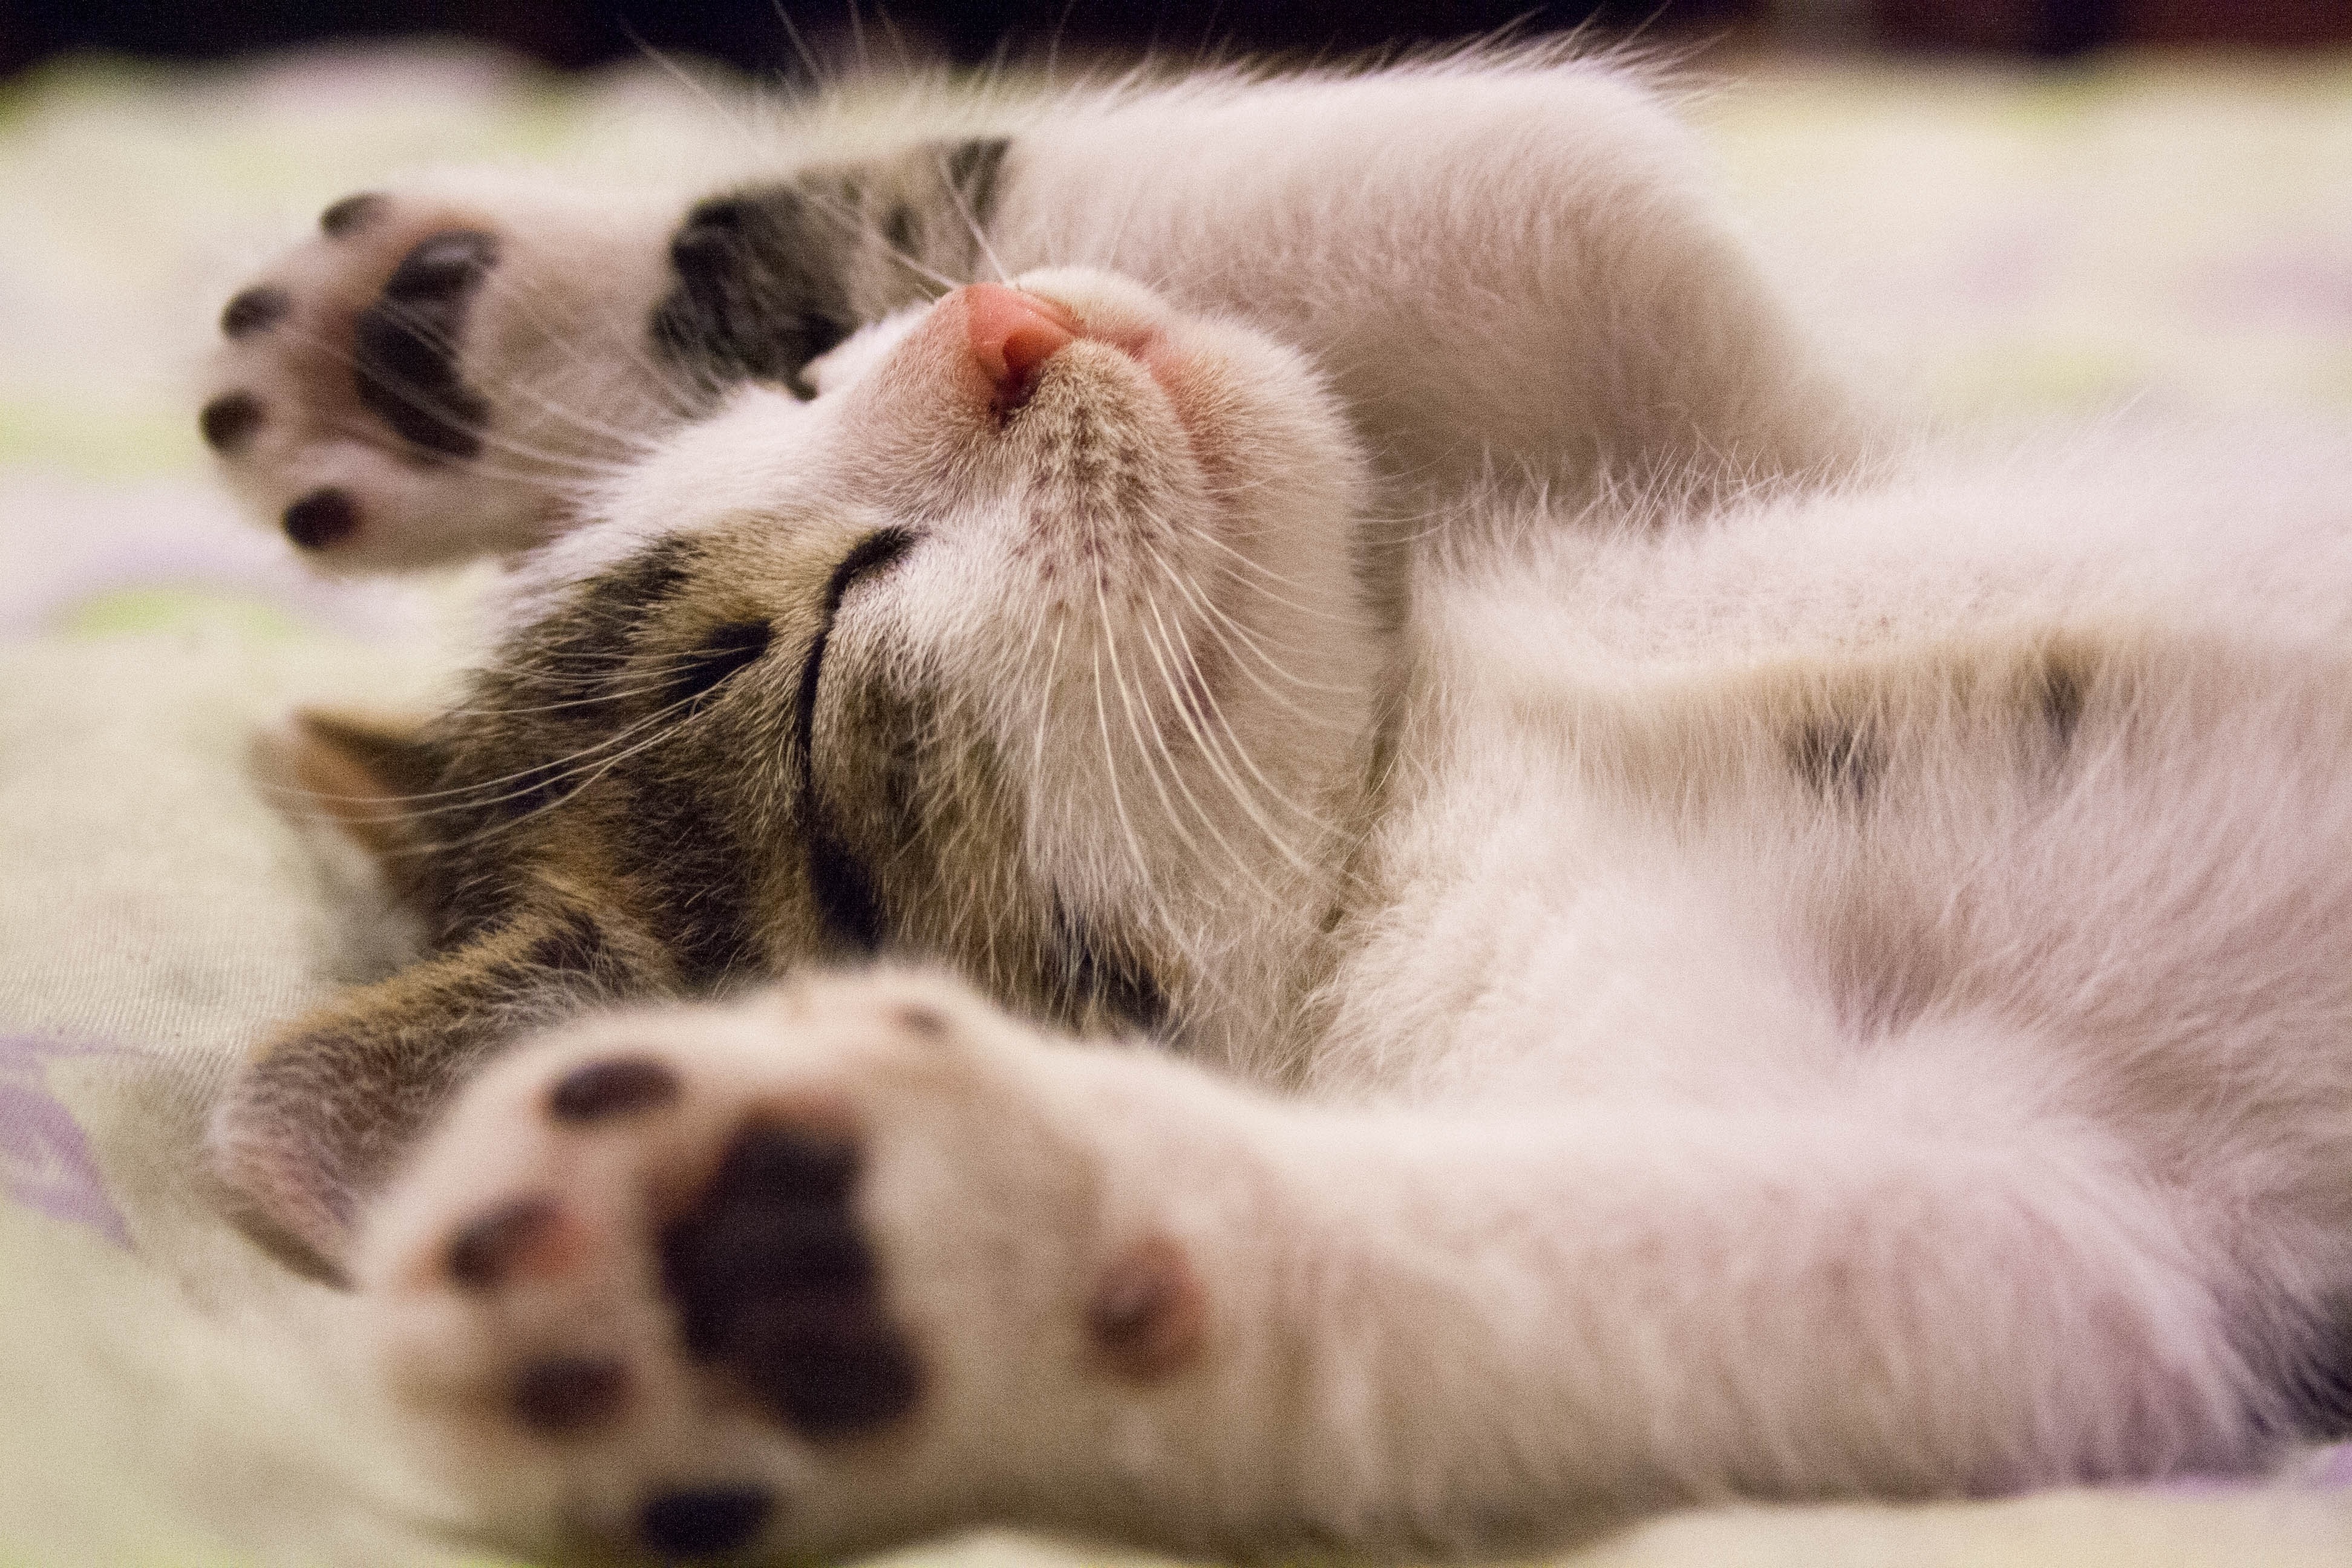 50711 Screensavers and Wallpapers Kitten for phone. Download Animals, Lies, Kitty, Kitten, Kid, Tot, Sleep, Dream pictures for free